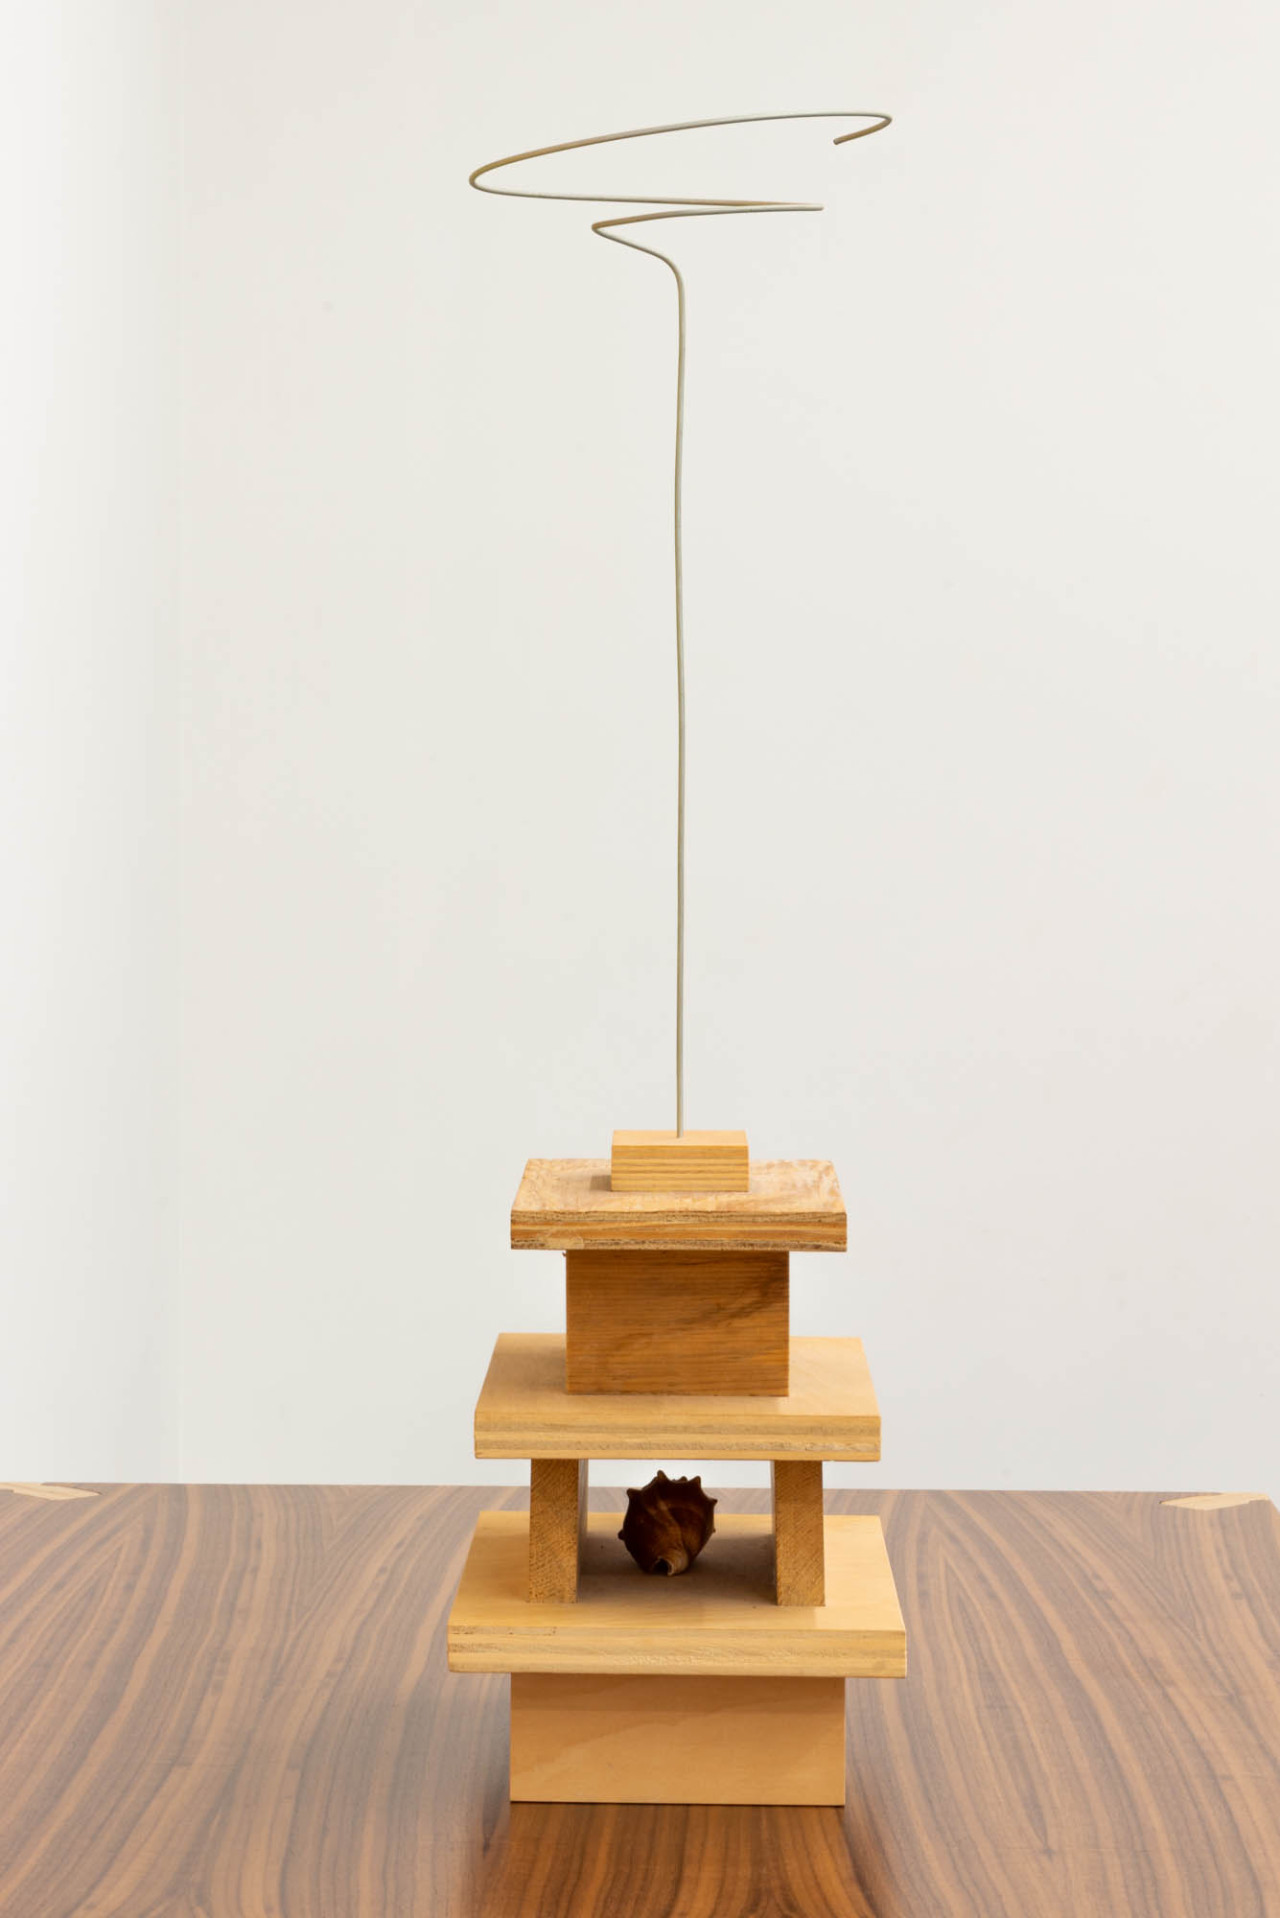 Miduny,  MiMi table , Canaletto walnut, furniture grade birch plywood and orange paint; B. Wurtz,  Untitled , wood, can, shell, wire.